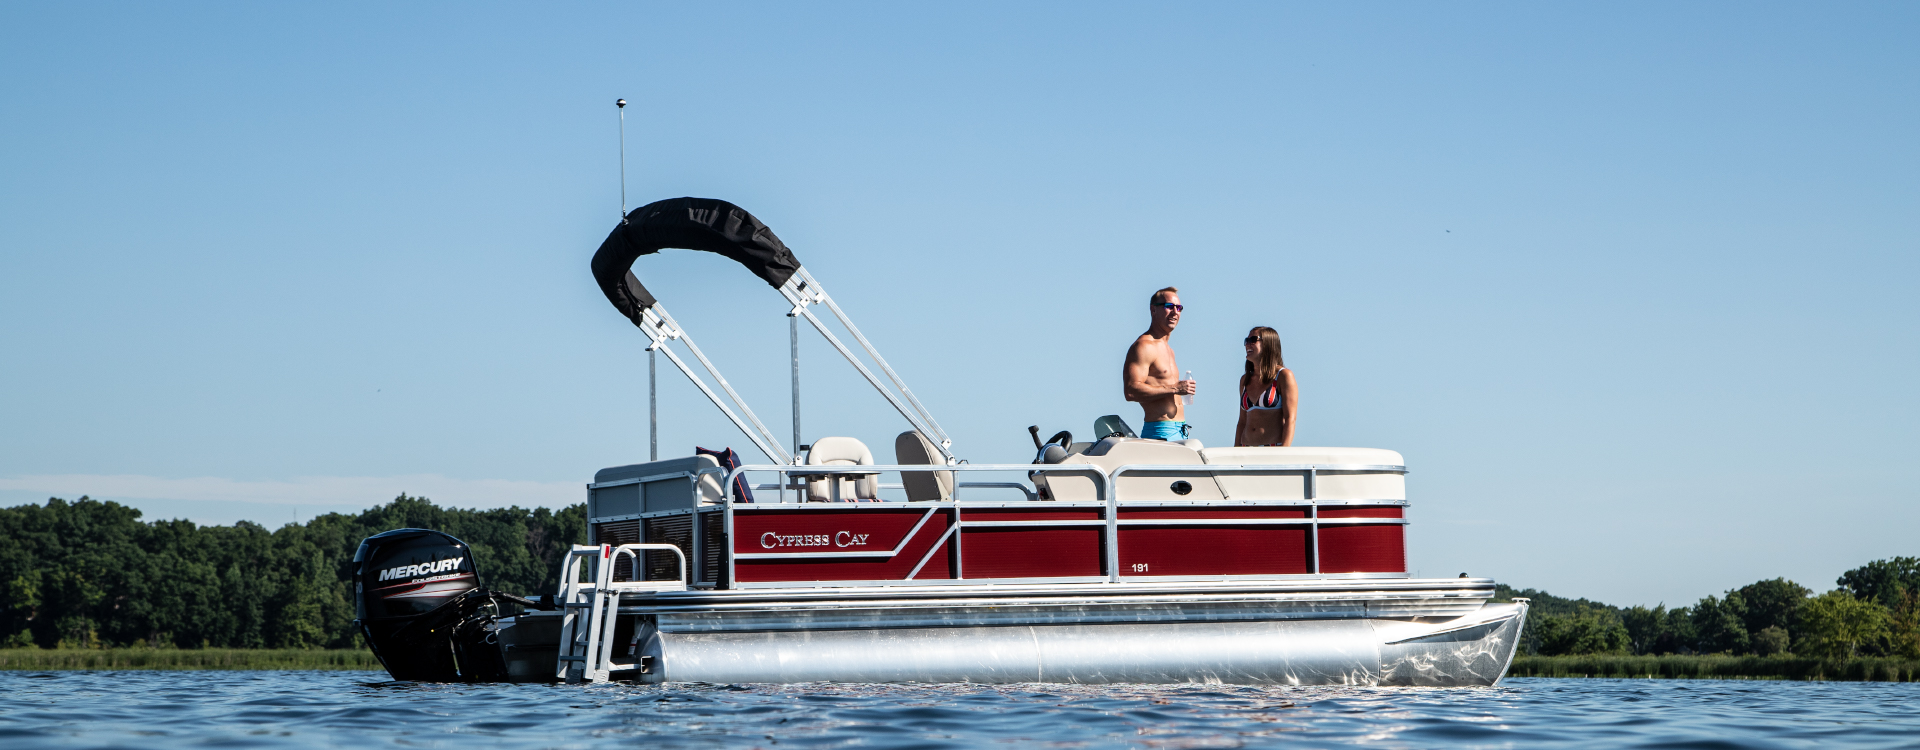 Cypress Cay Pontoon Boats | Relaxation, Adventure & Fishing Boats